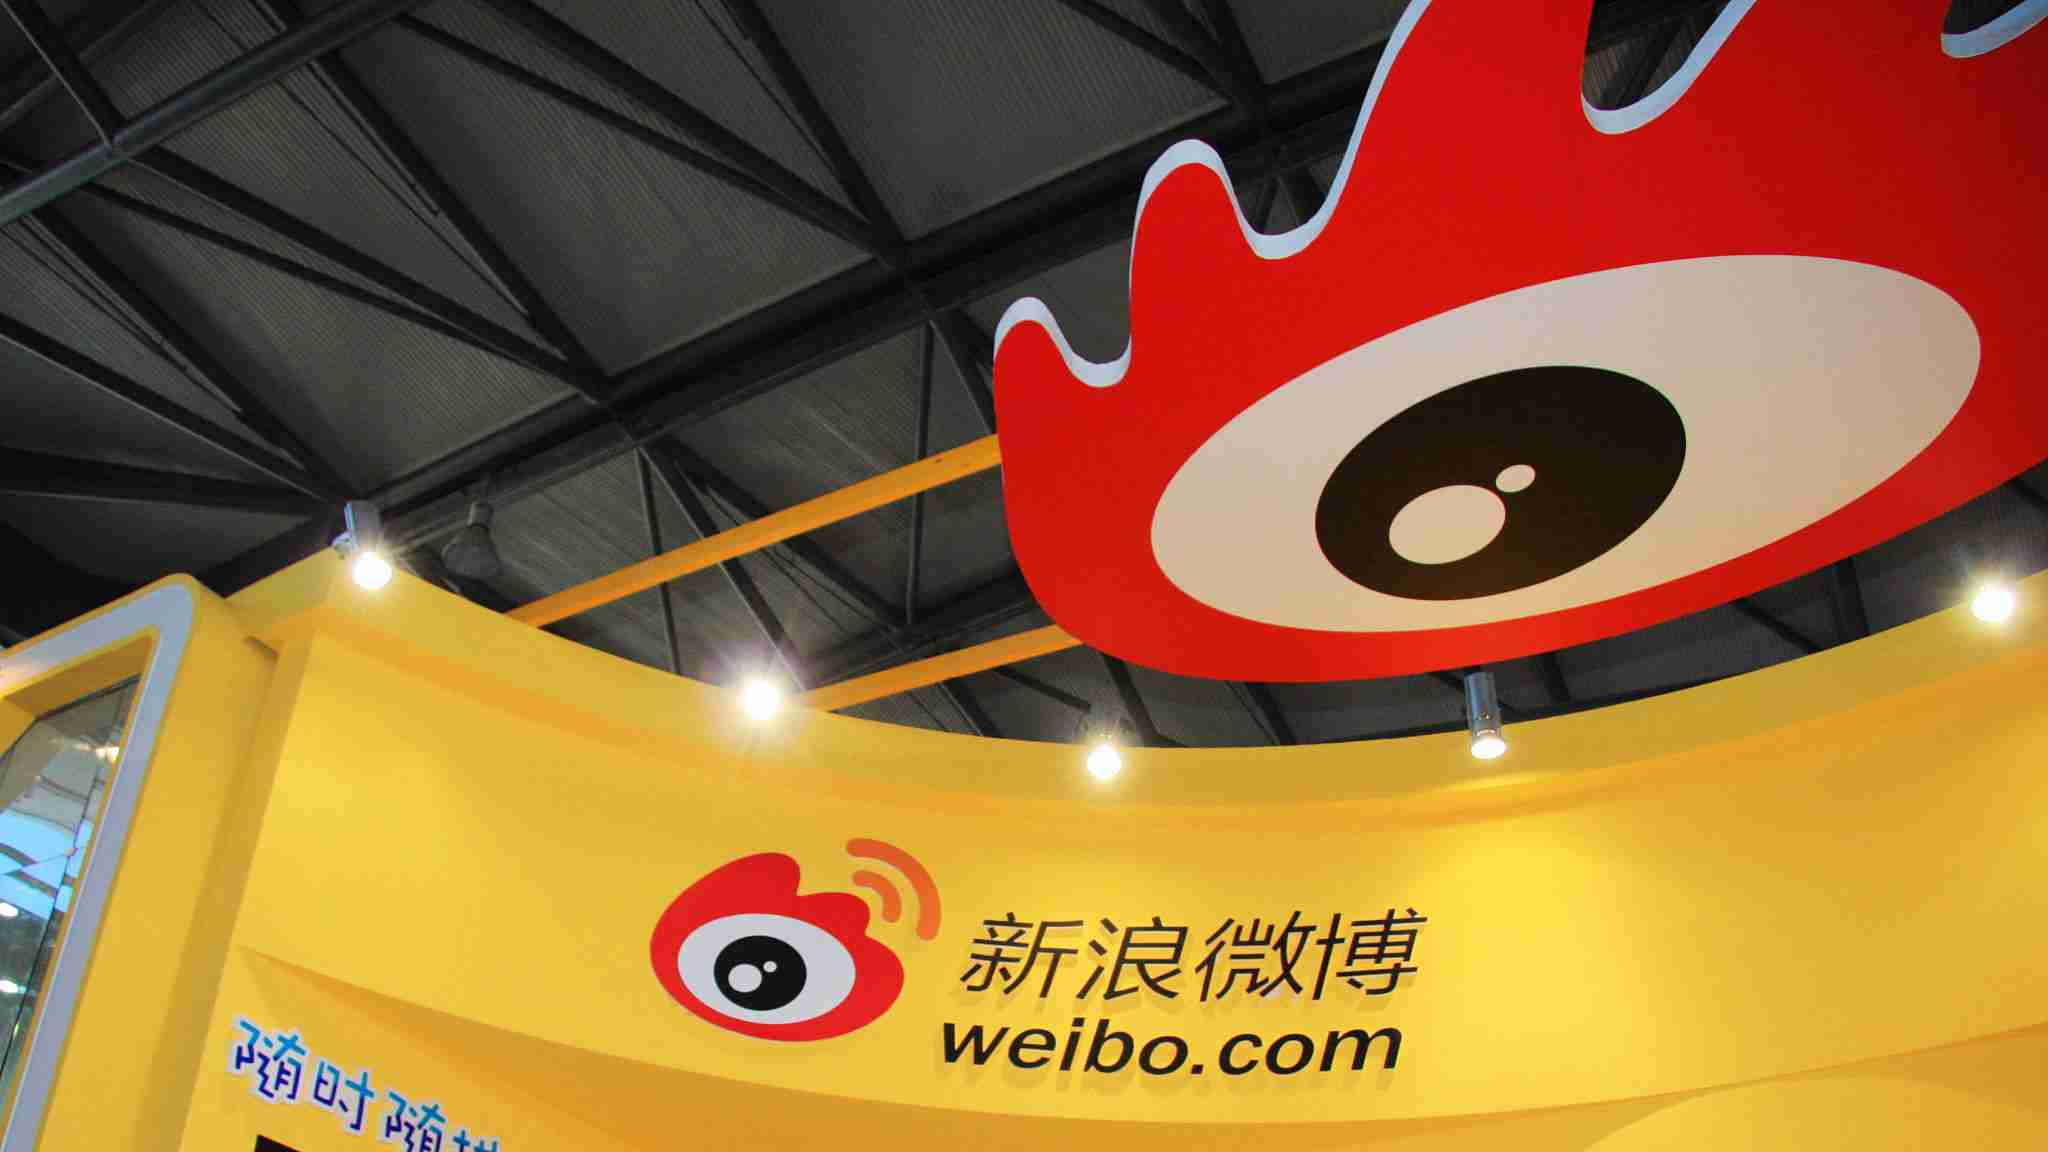 Influential Weibo bloggers rake in 26.8 bln yuan in 2018